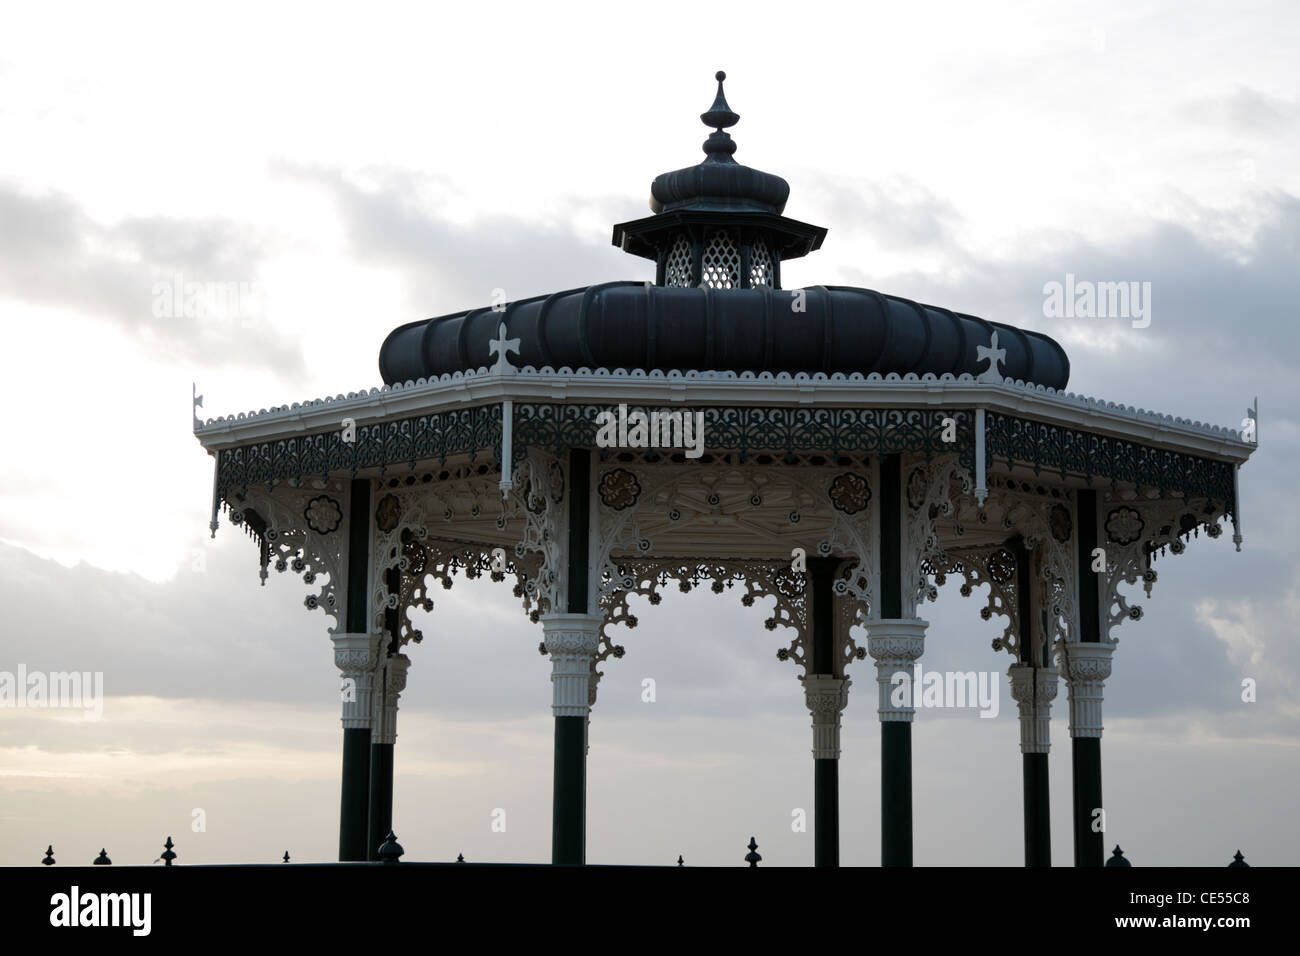 Brighton Bandstand known as 'The Birdcage' - Stock Image